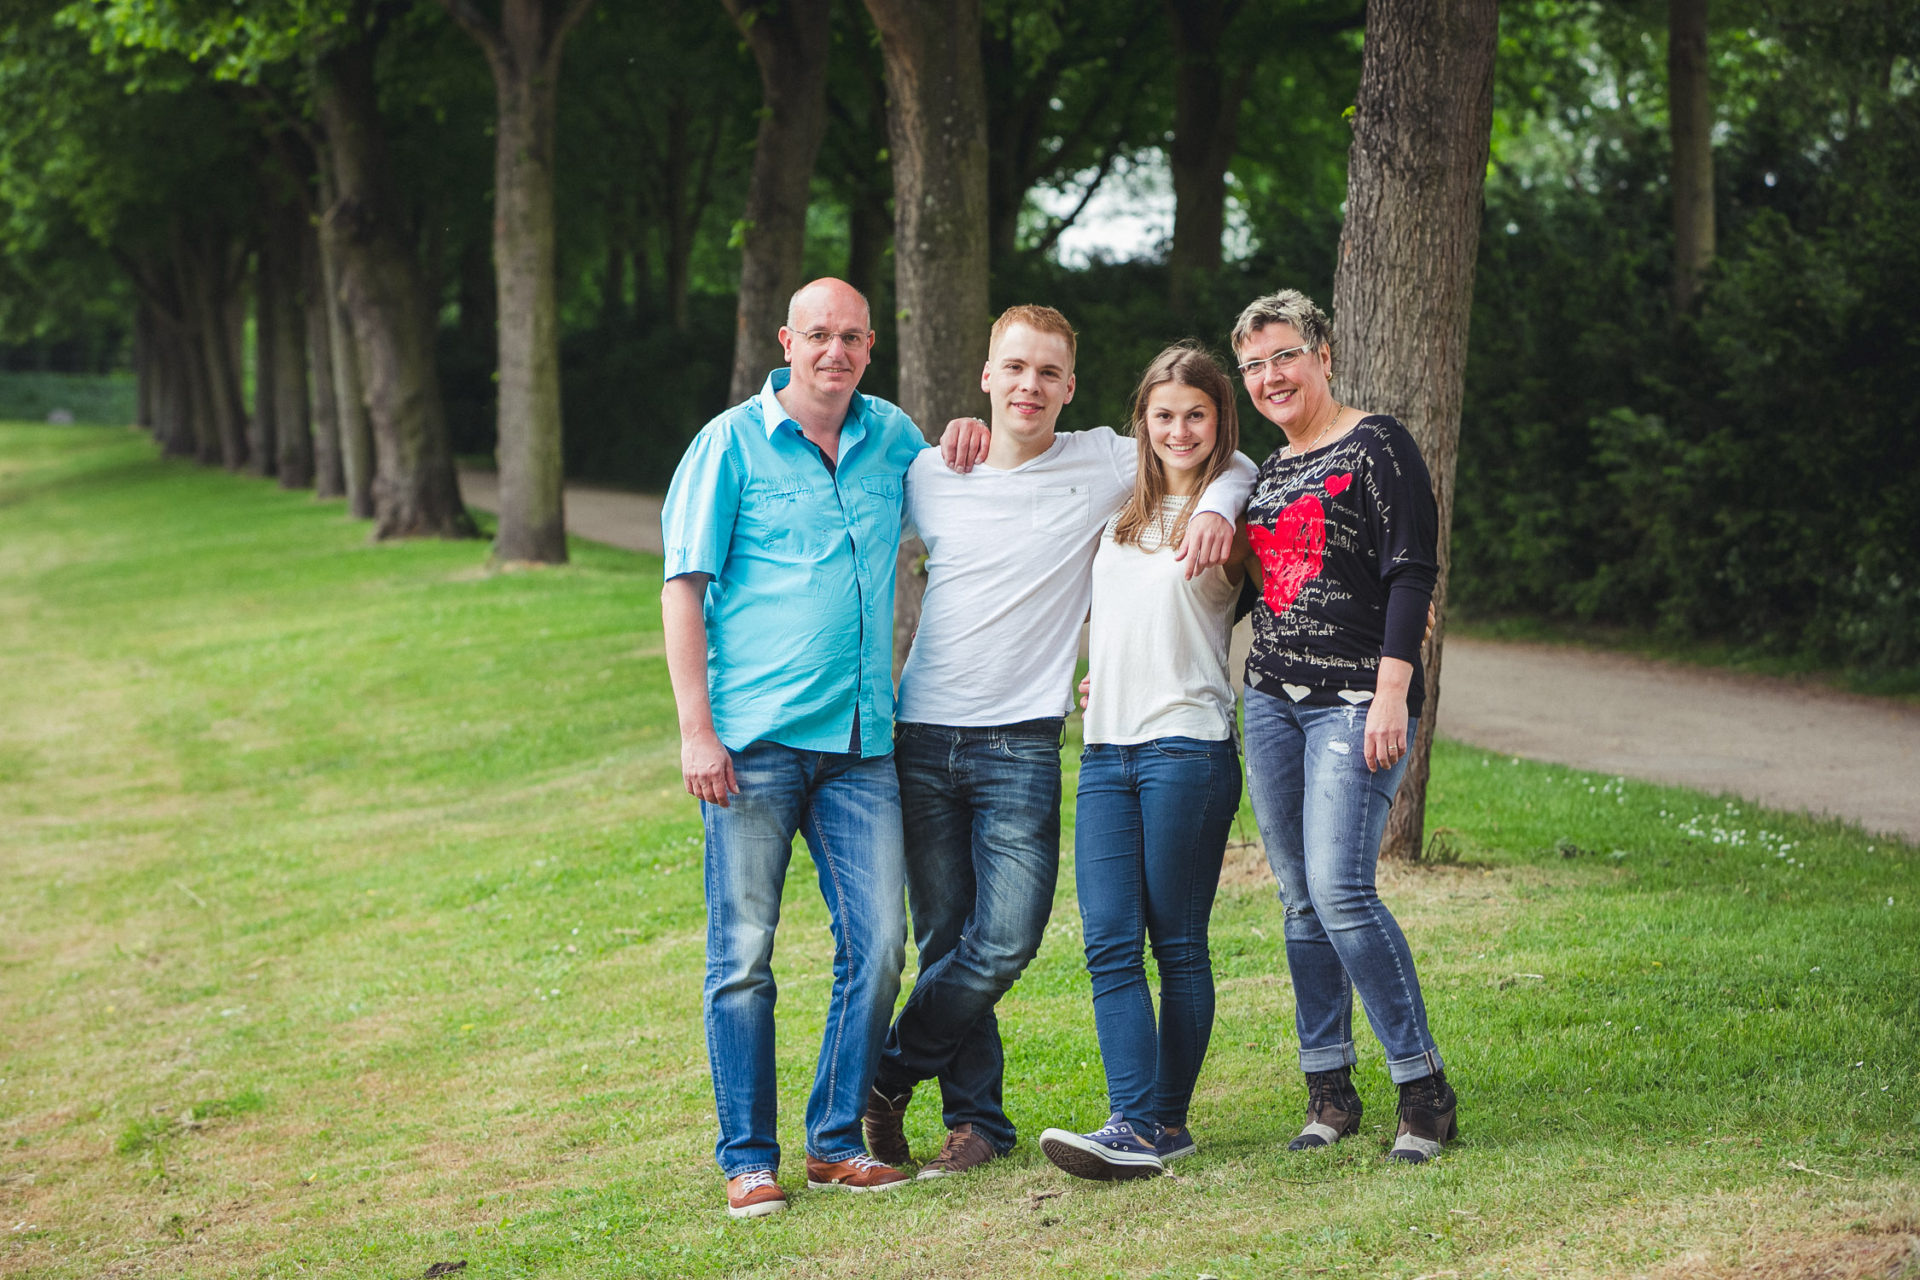 Familienshooting-3037